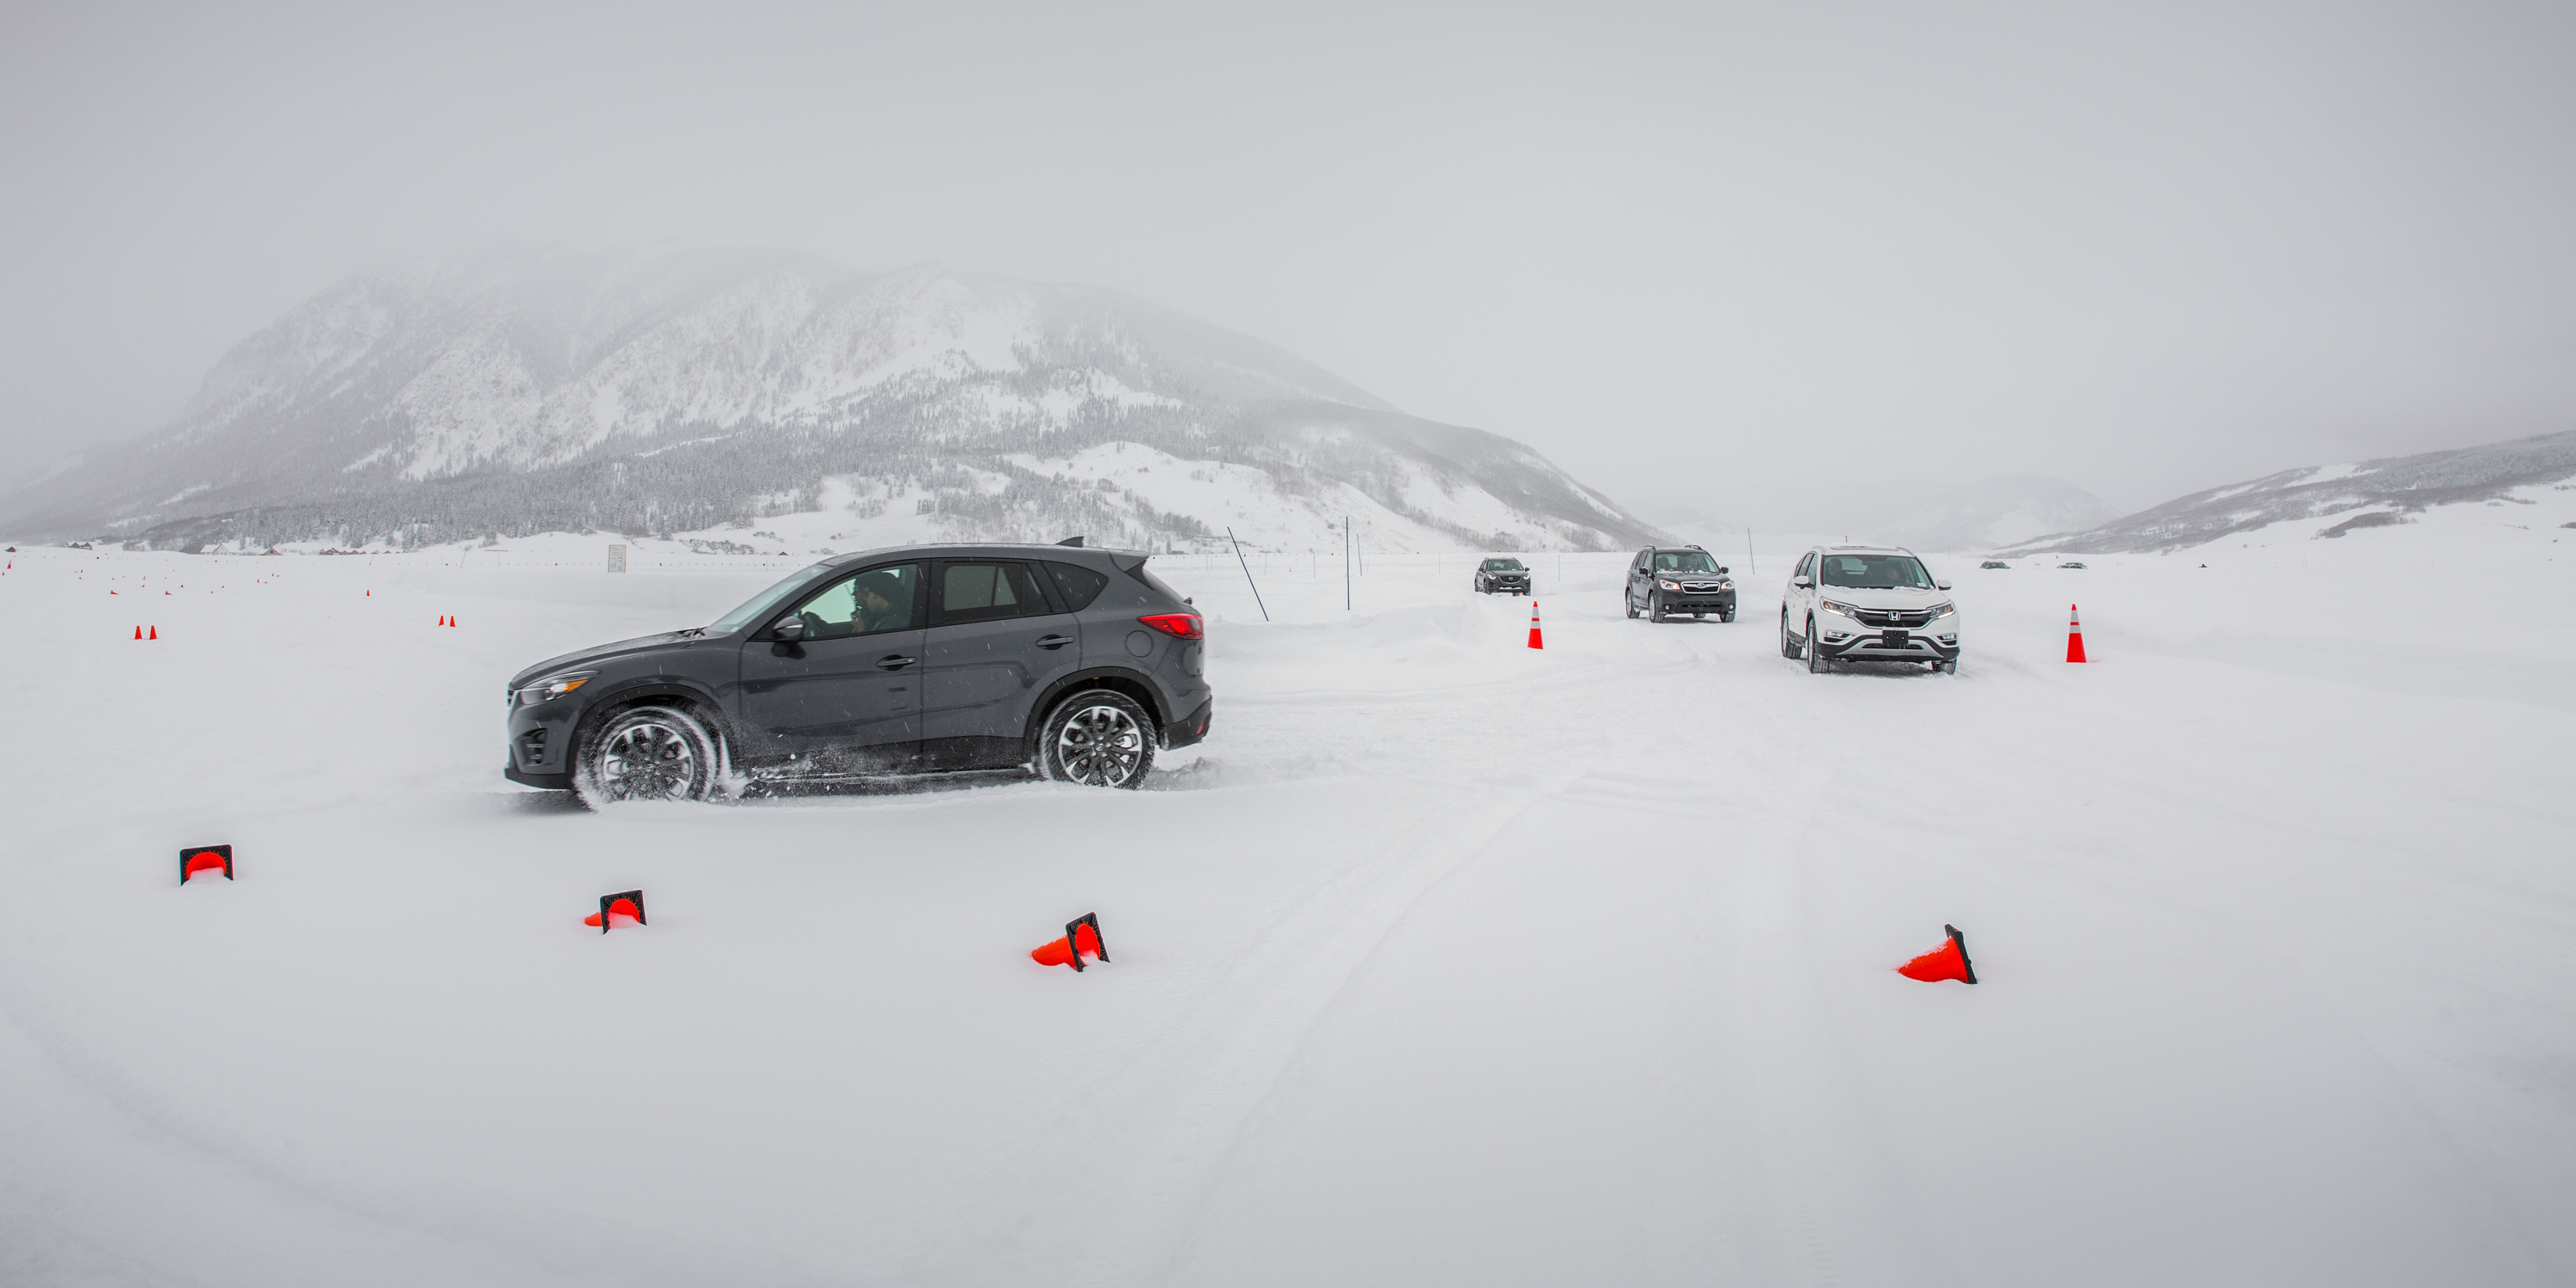 Simple 2016 Mazda Ice Academy  Crested Butte Colorado  Photos